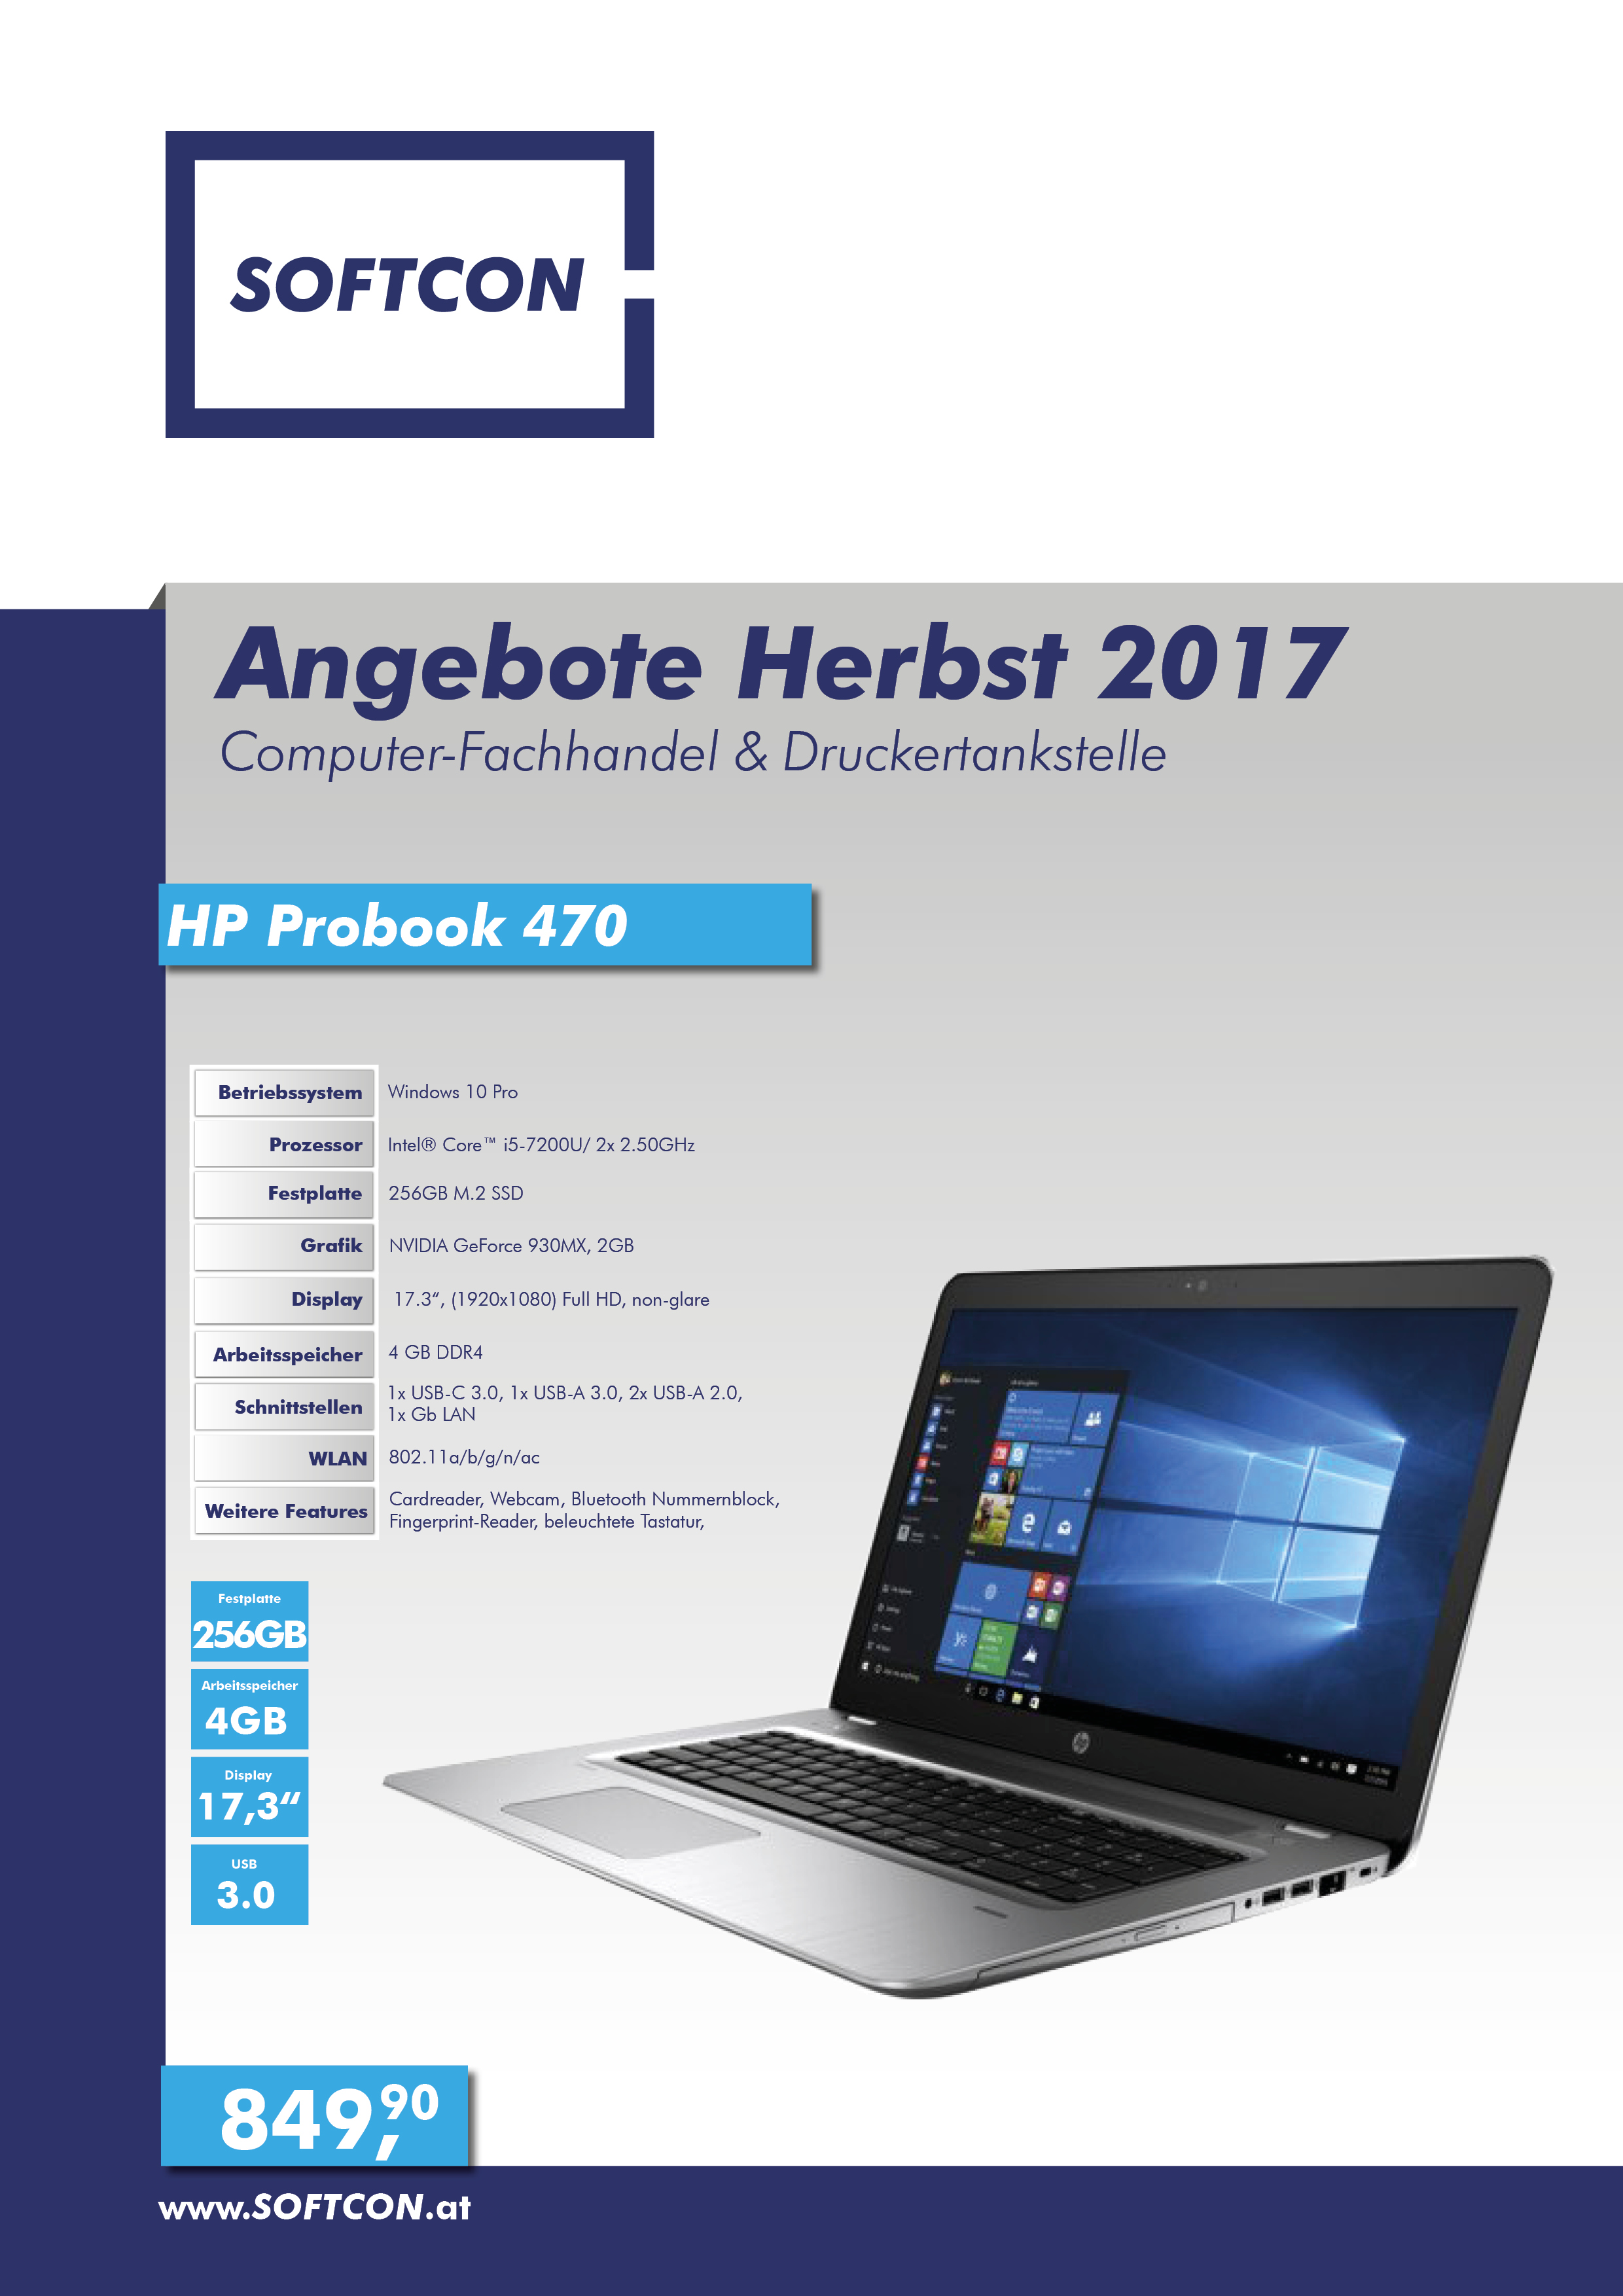 SOFTCON Angebote Herbst 2017